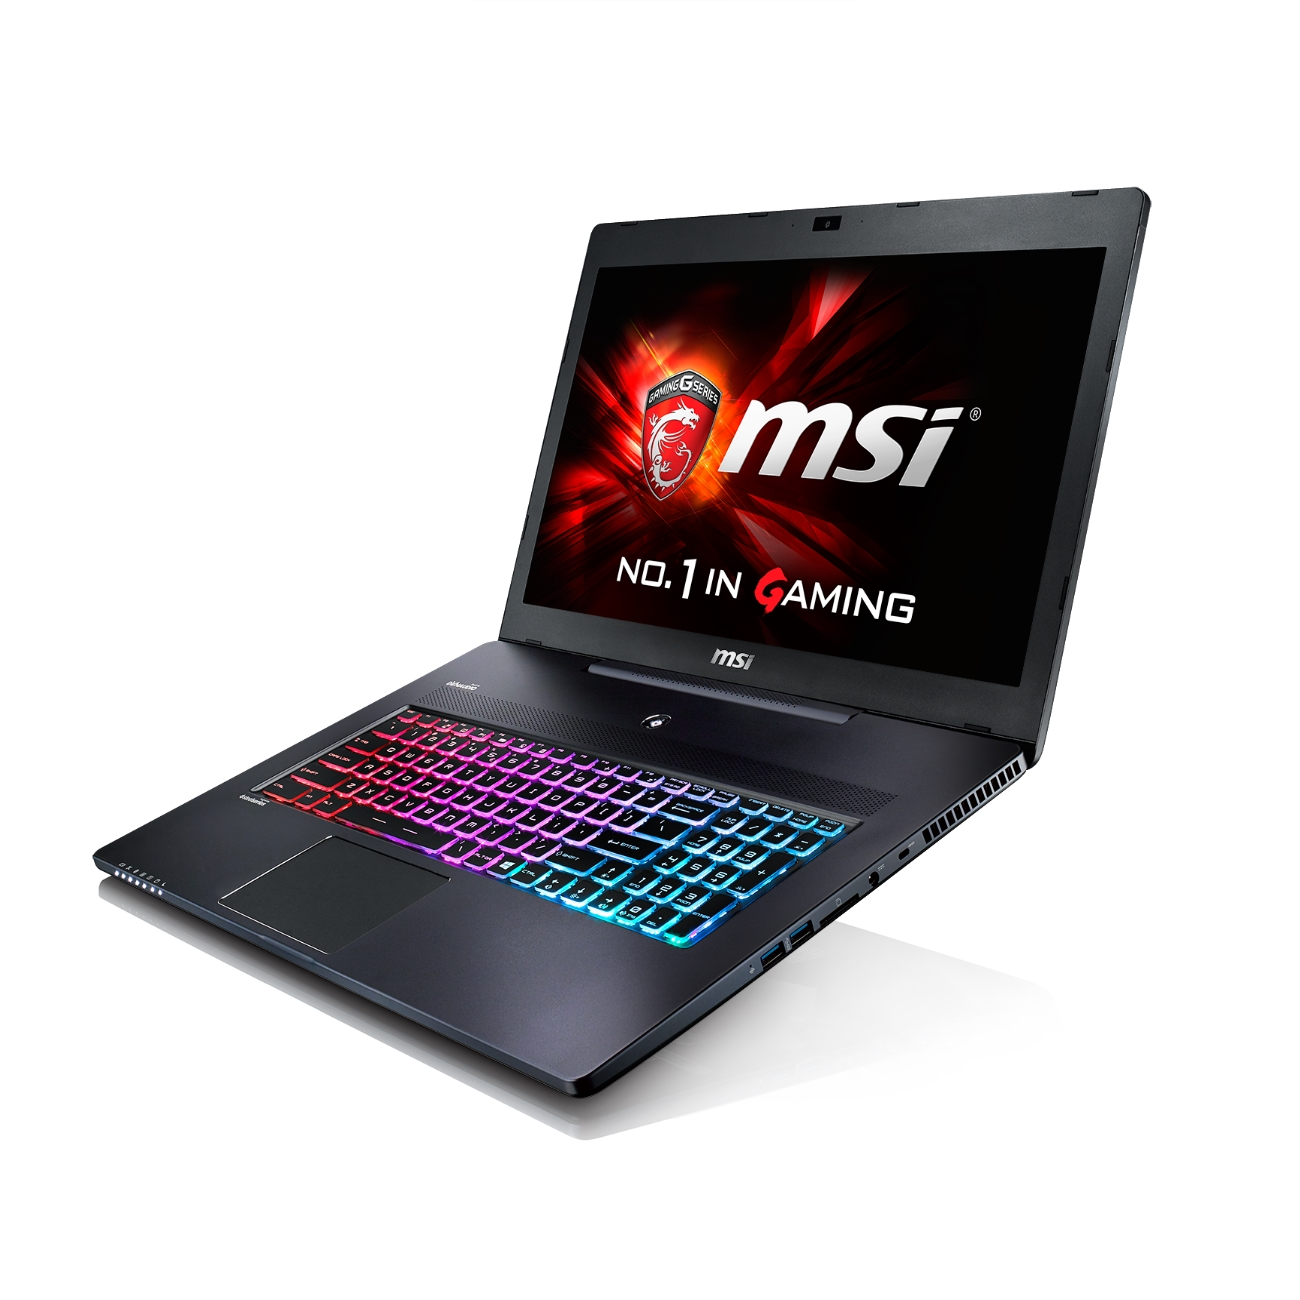 MSI GS70 2QD STEALTH TOUCHPAD WINDOWS 7 DRIVERS DOWNLOAD